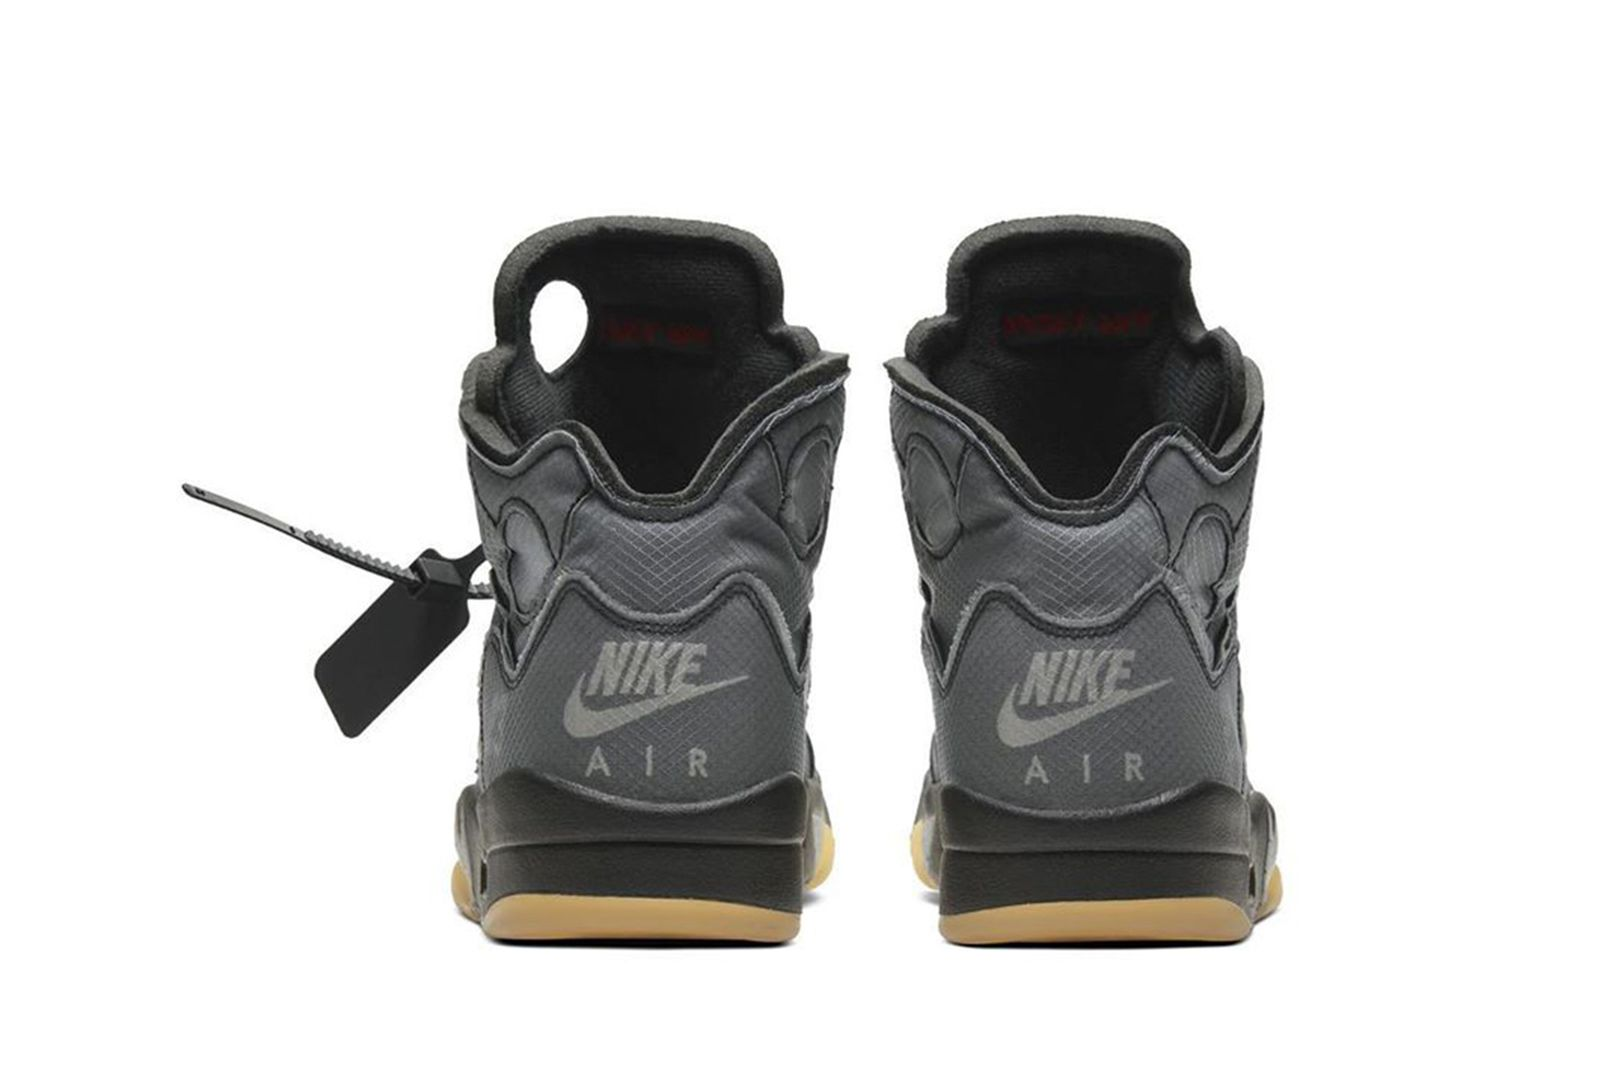 off-white-nike-air-jordan-5-release-date-price-official-product-03